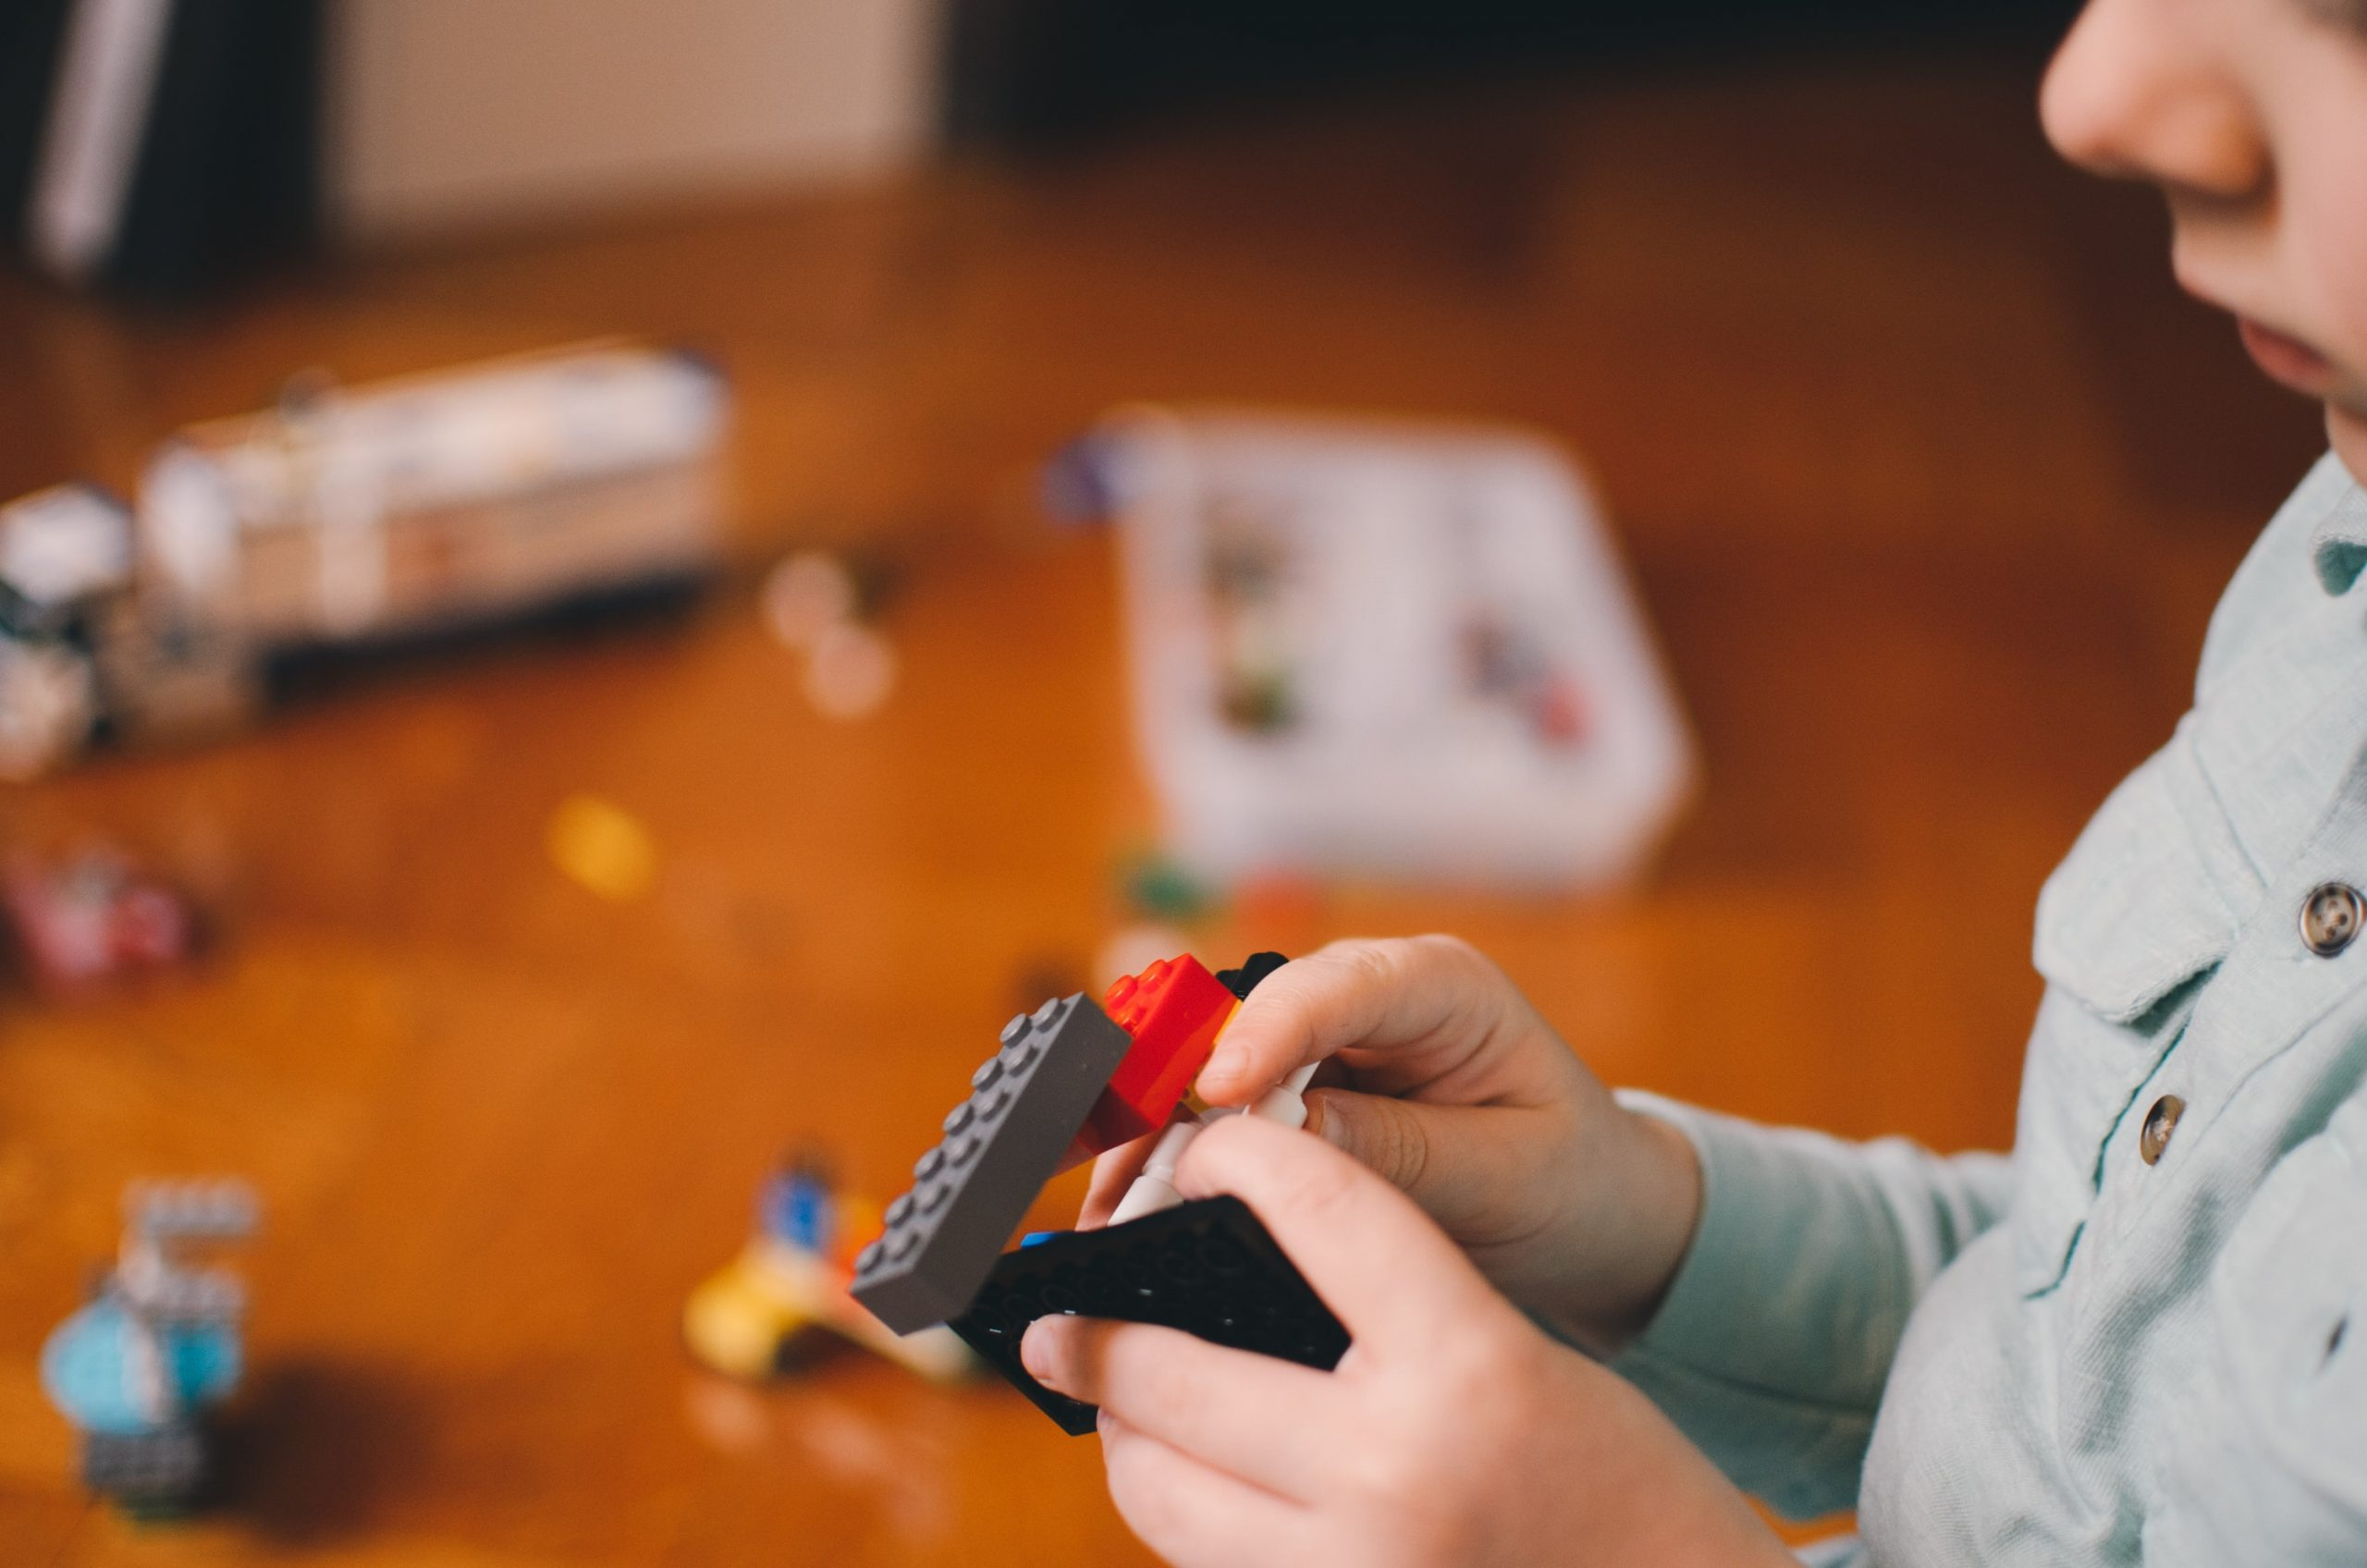 managing digital devices cyber wellness parenting tips